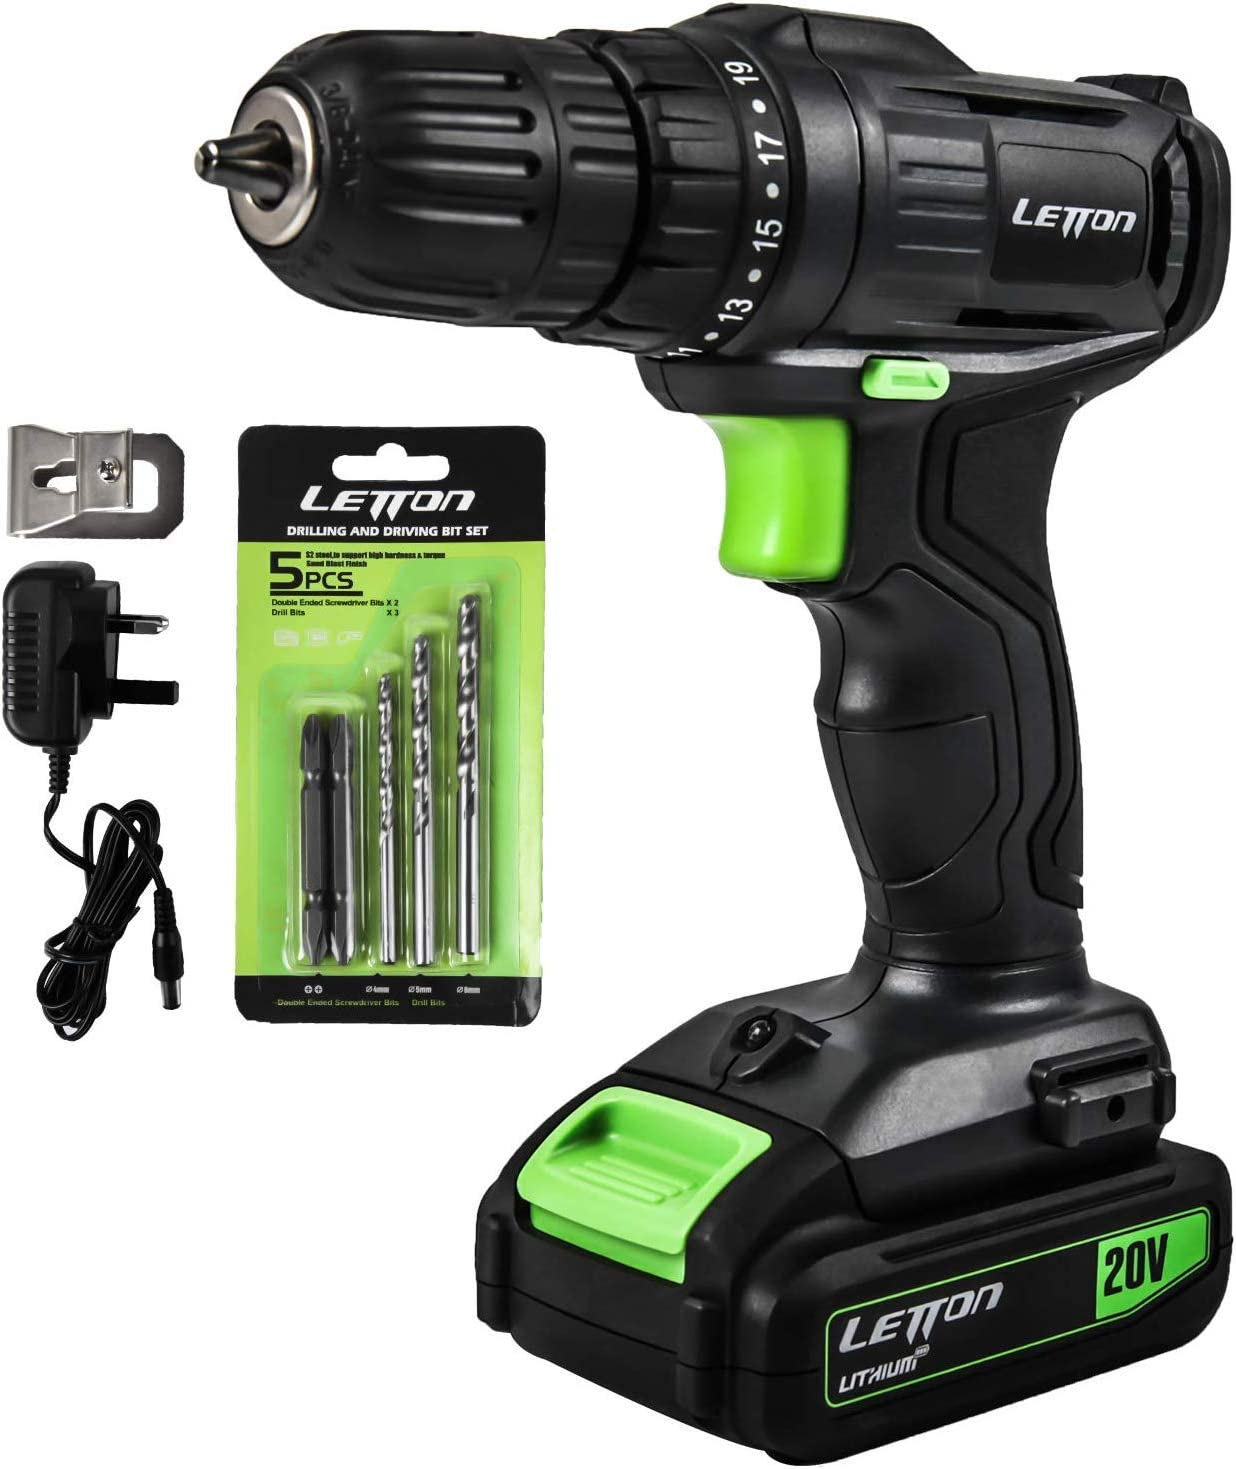 Cordless Drill Driver, 20V Lithium Ion Power Drill with Work Light, Max Torque 20N.m , 3 8 inch Keyless Chuck, 19 1 Position, Single Speed 0-600RPM – 1.3Ah Battery Charger Included